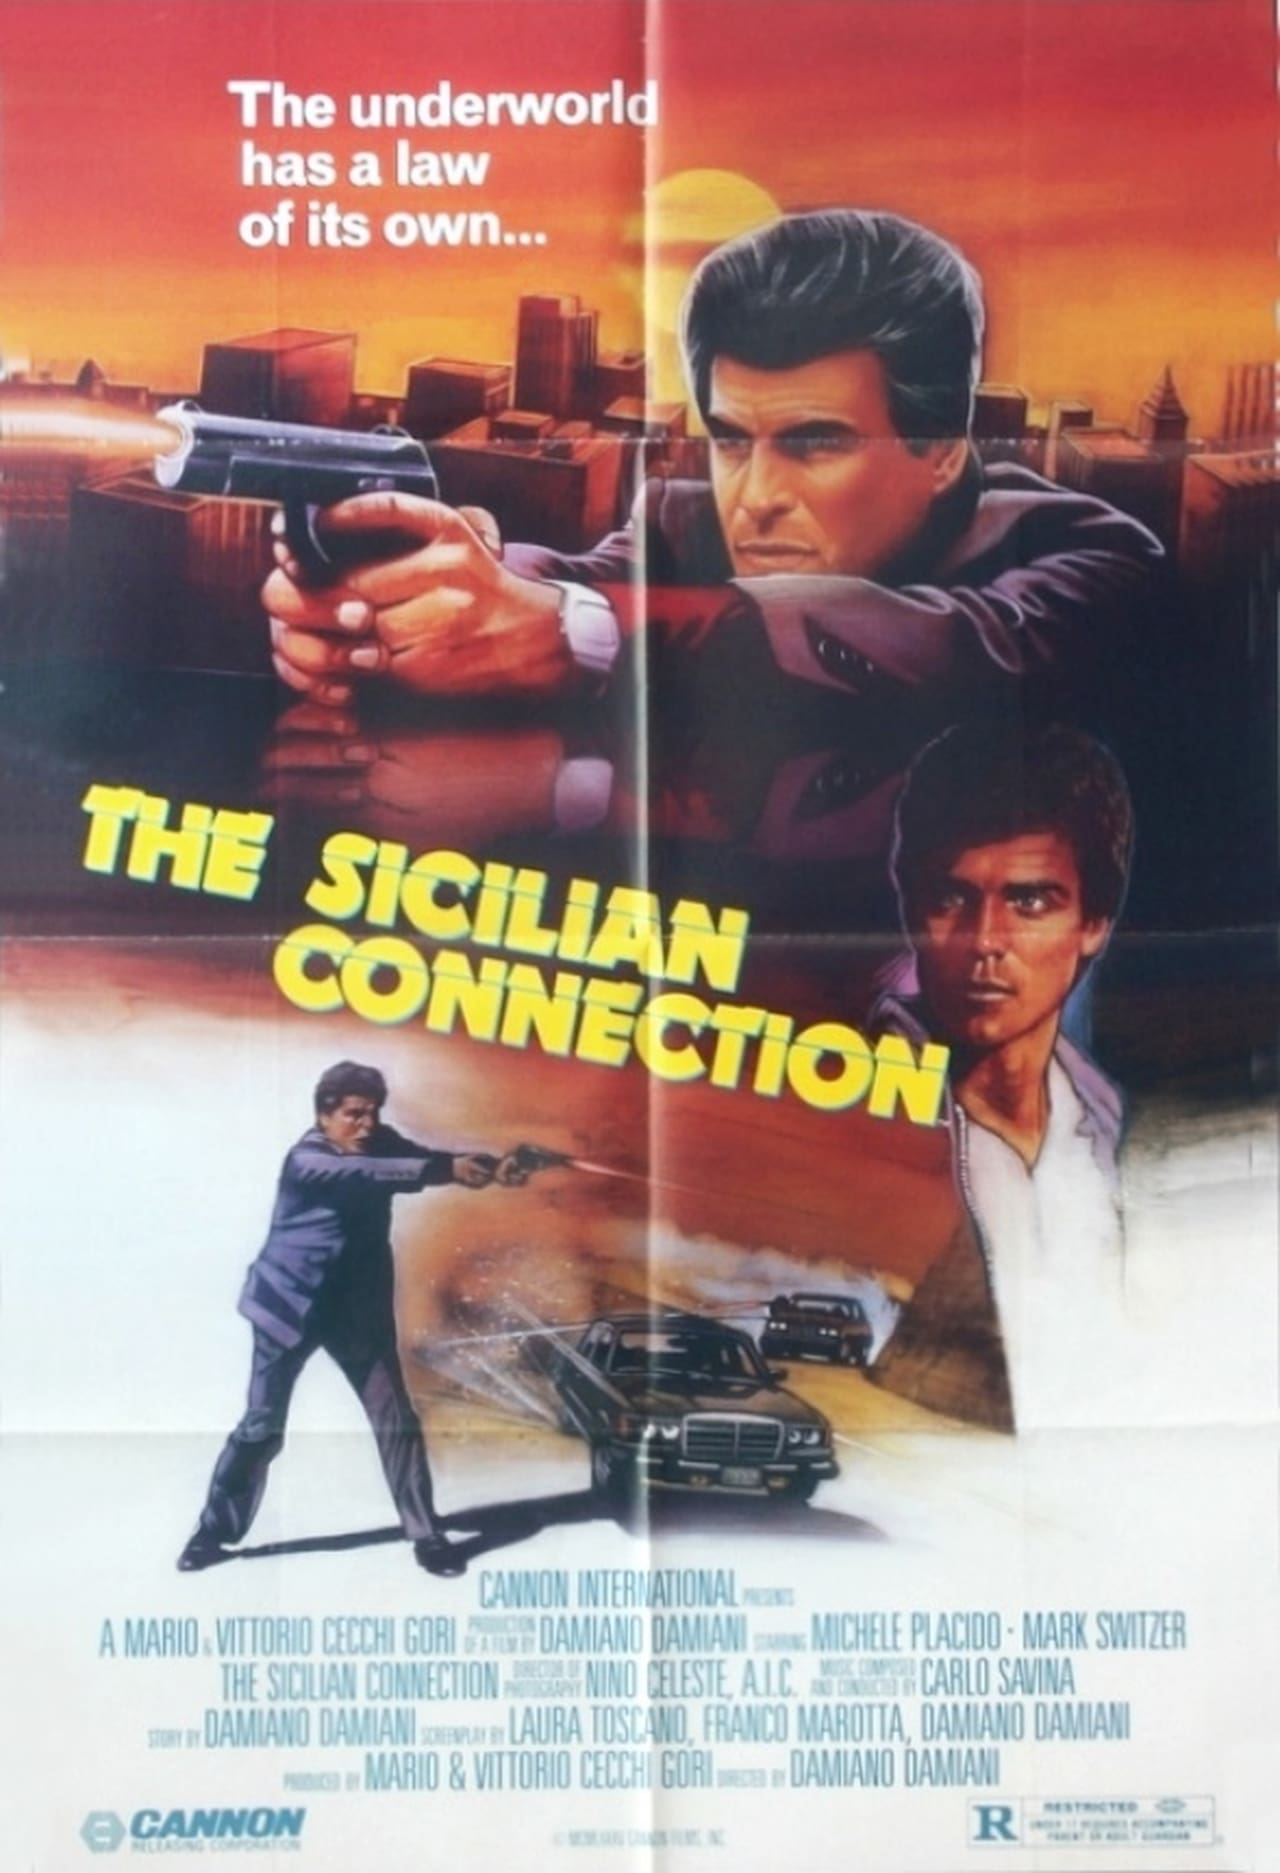 The Sicilian Connection